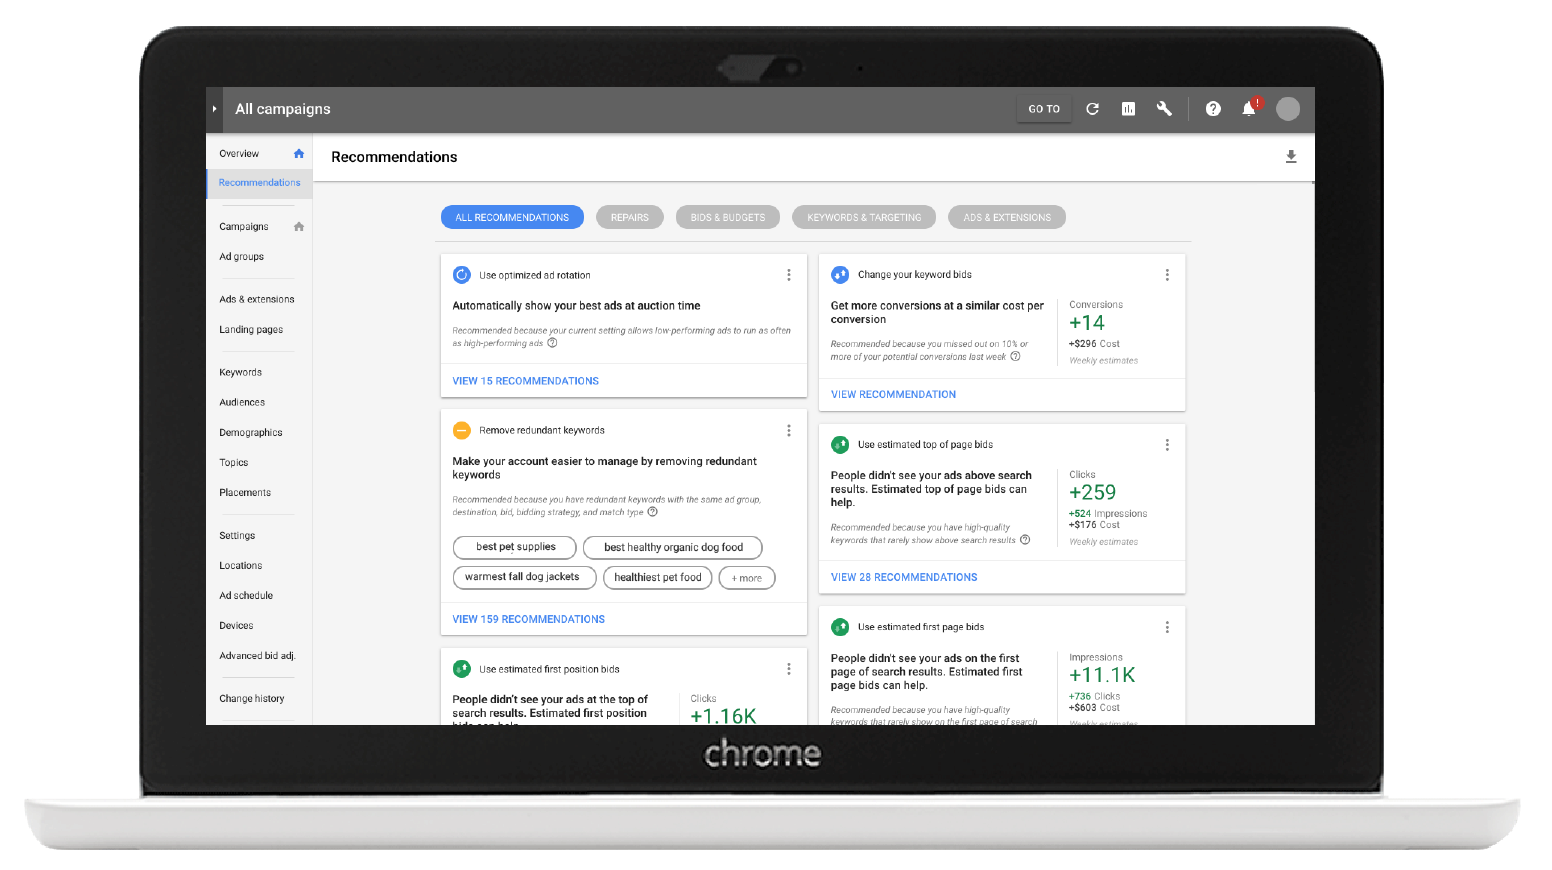 recommendations page in new google adwords ui